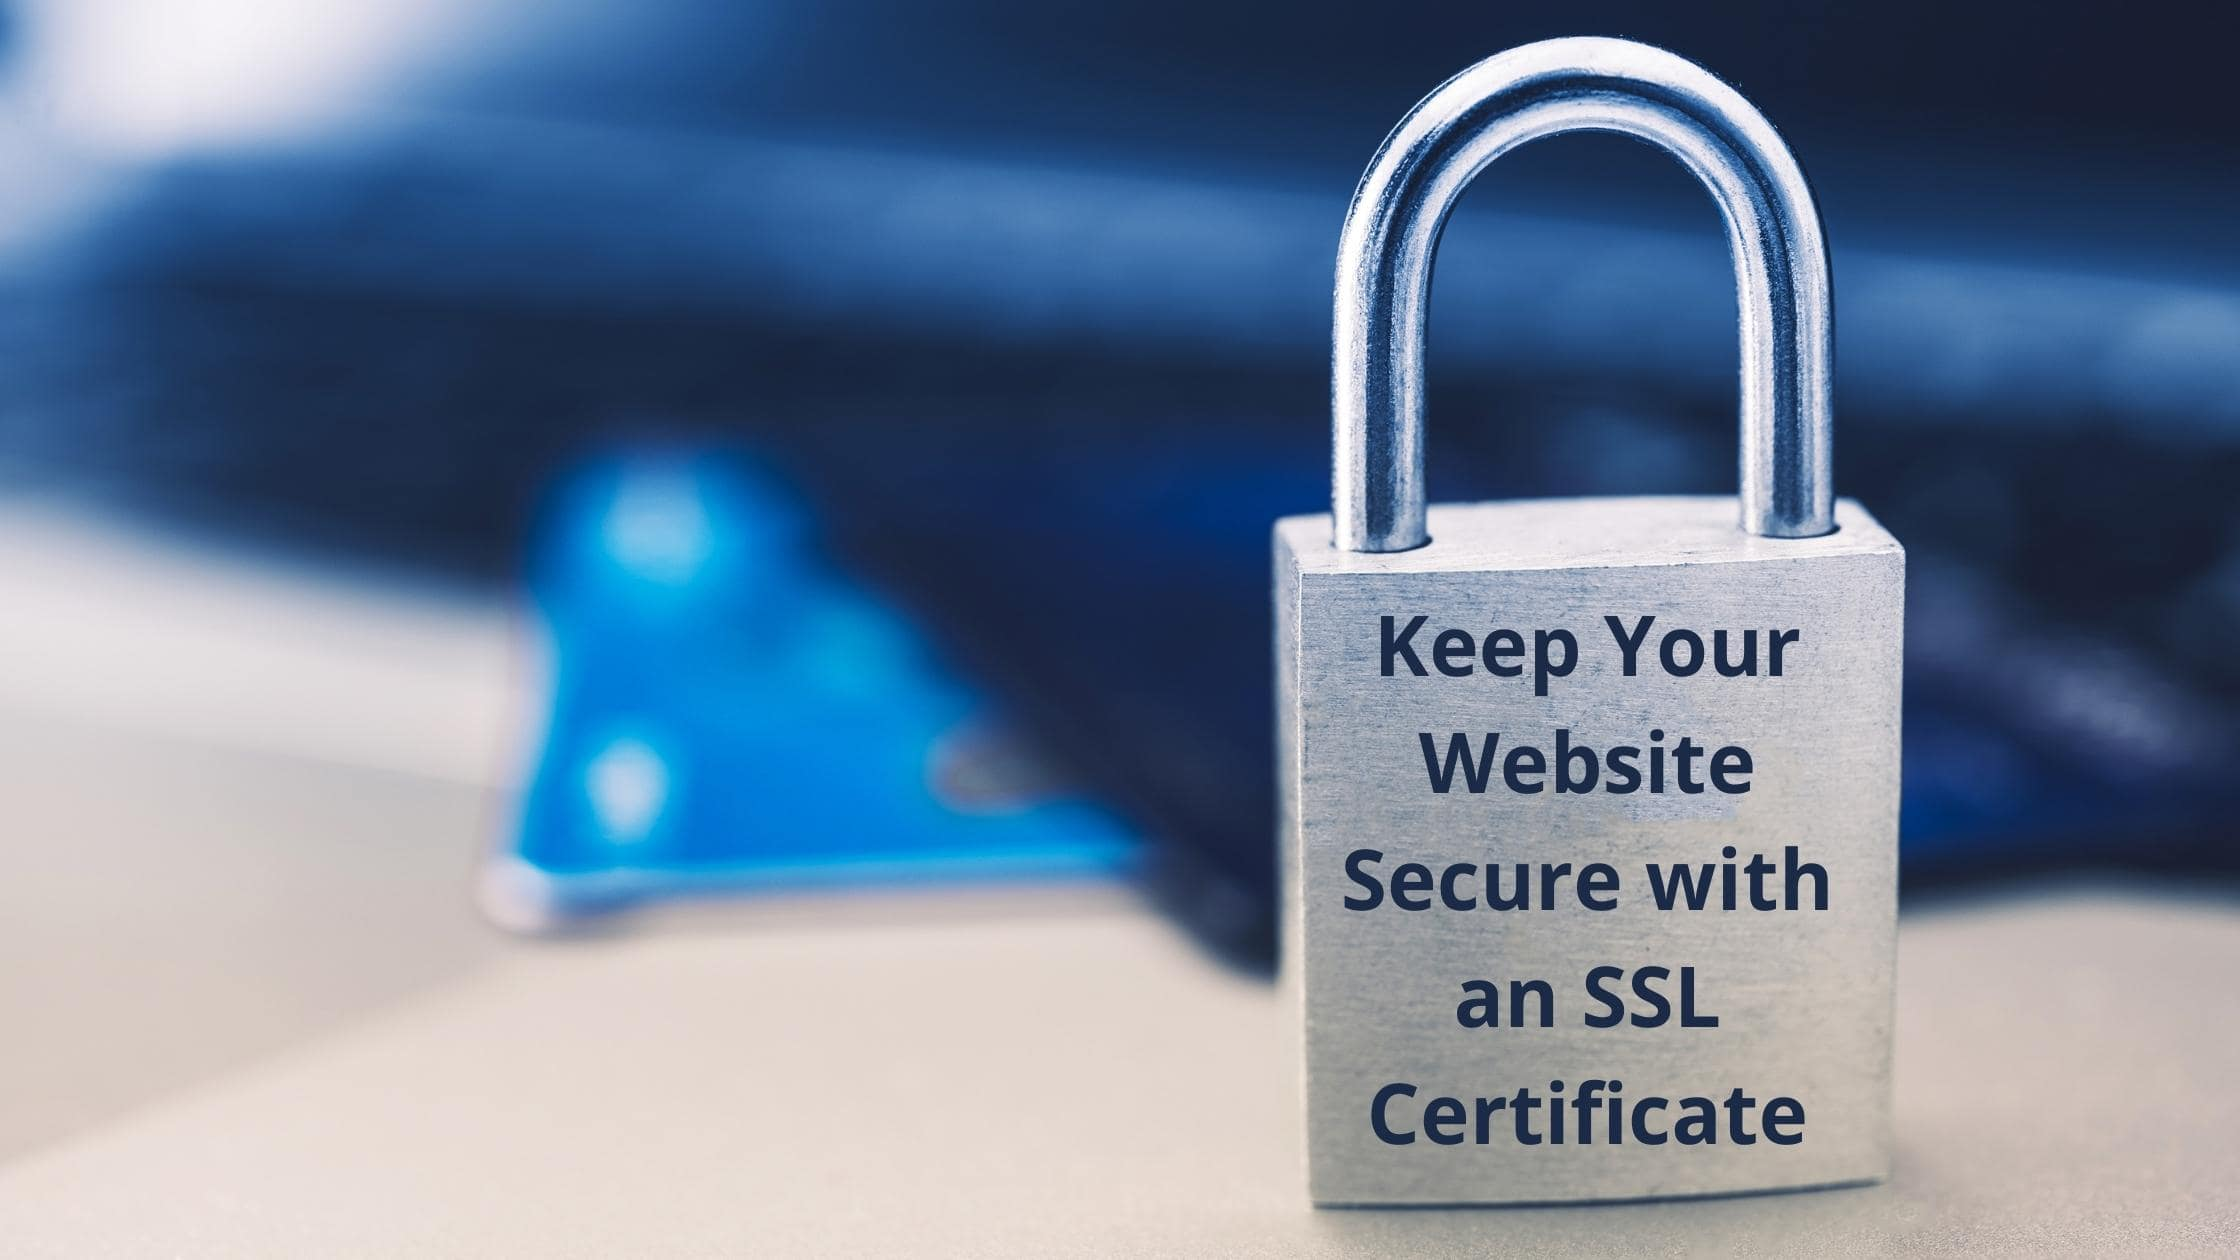 Keep Your Website Secure with an SSL Certificate